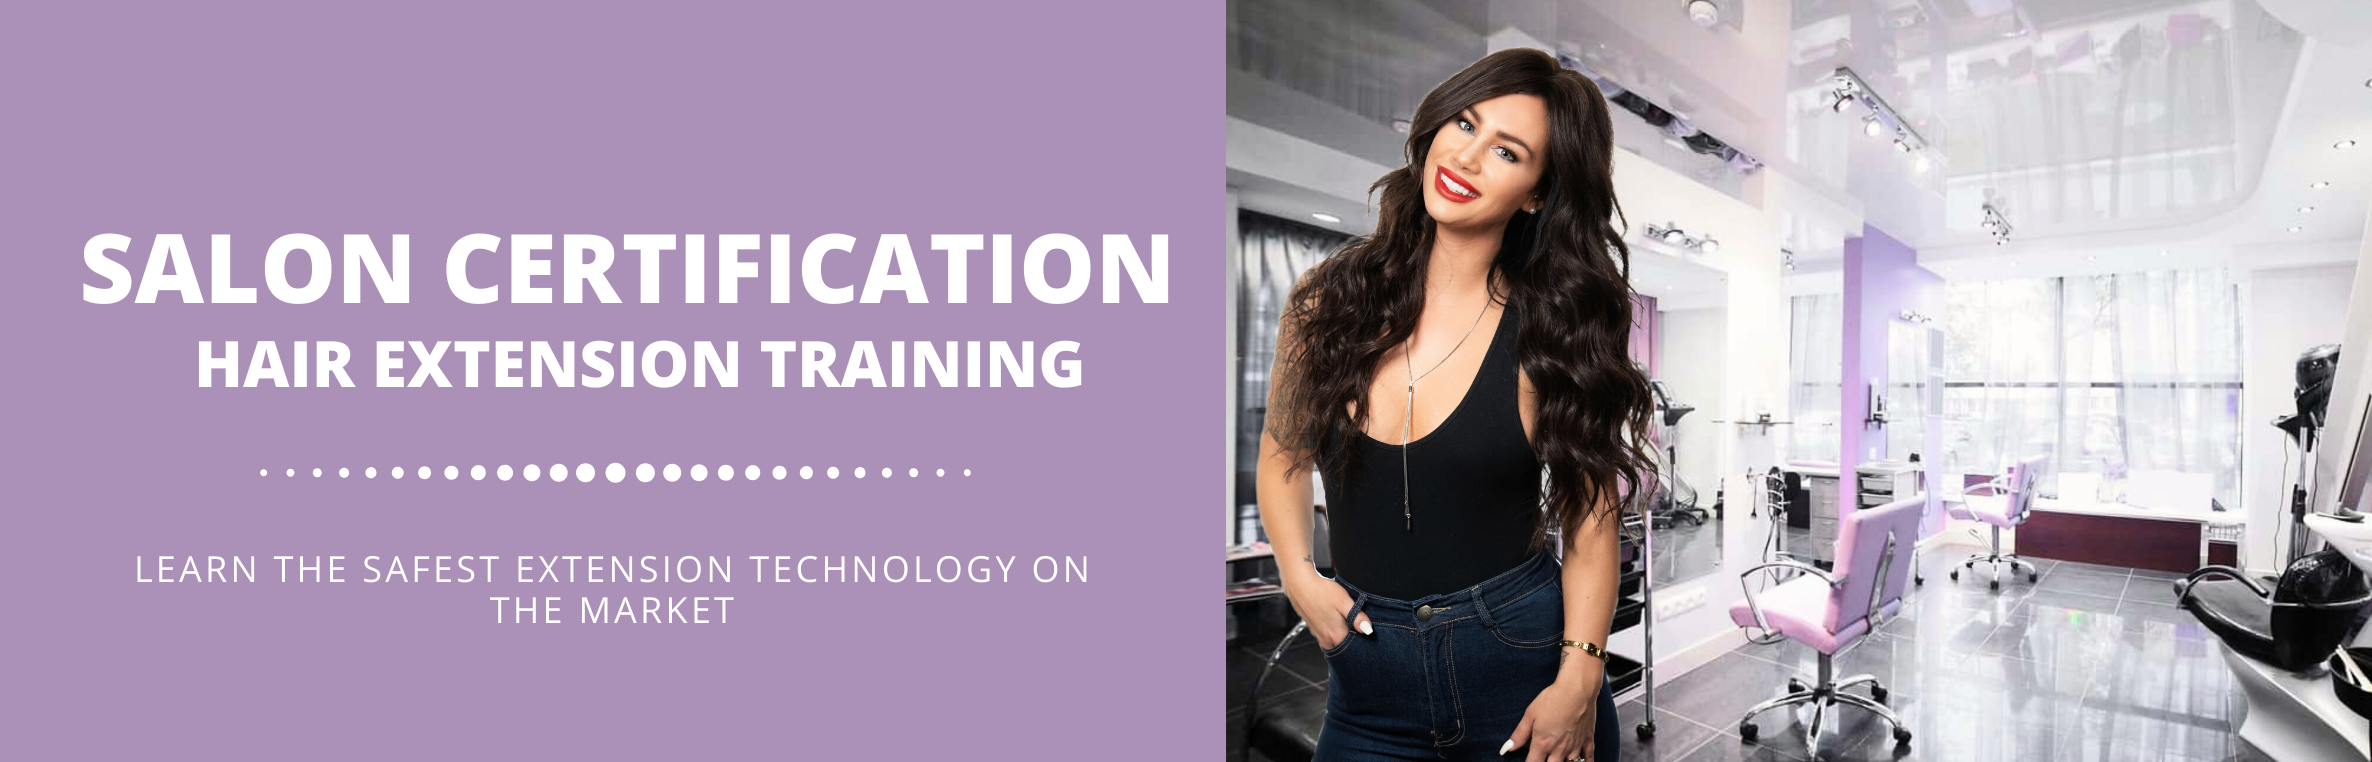 salon-hair-extension-training.png